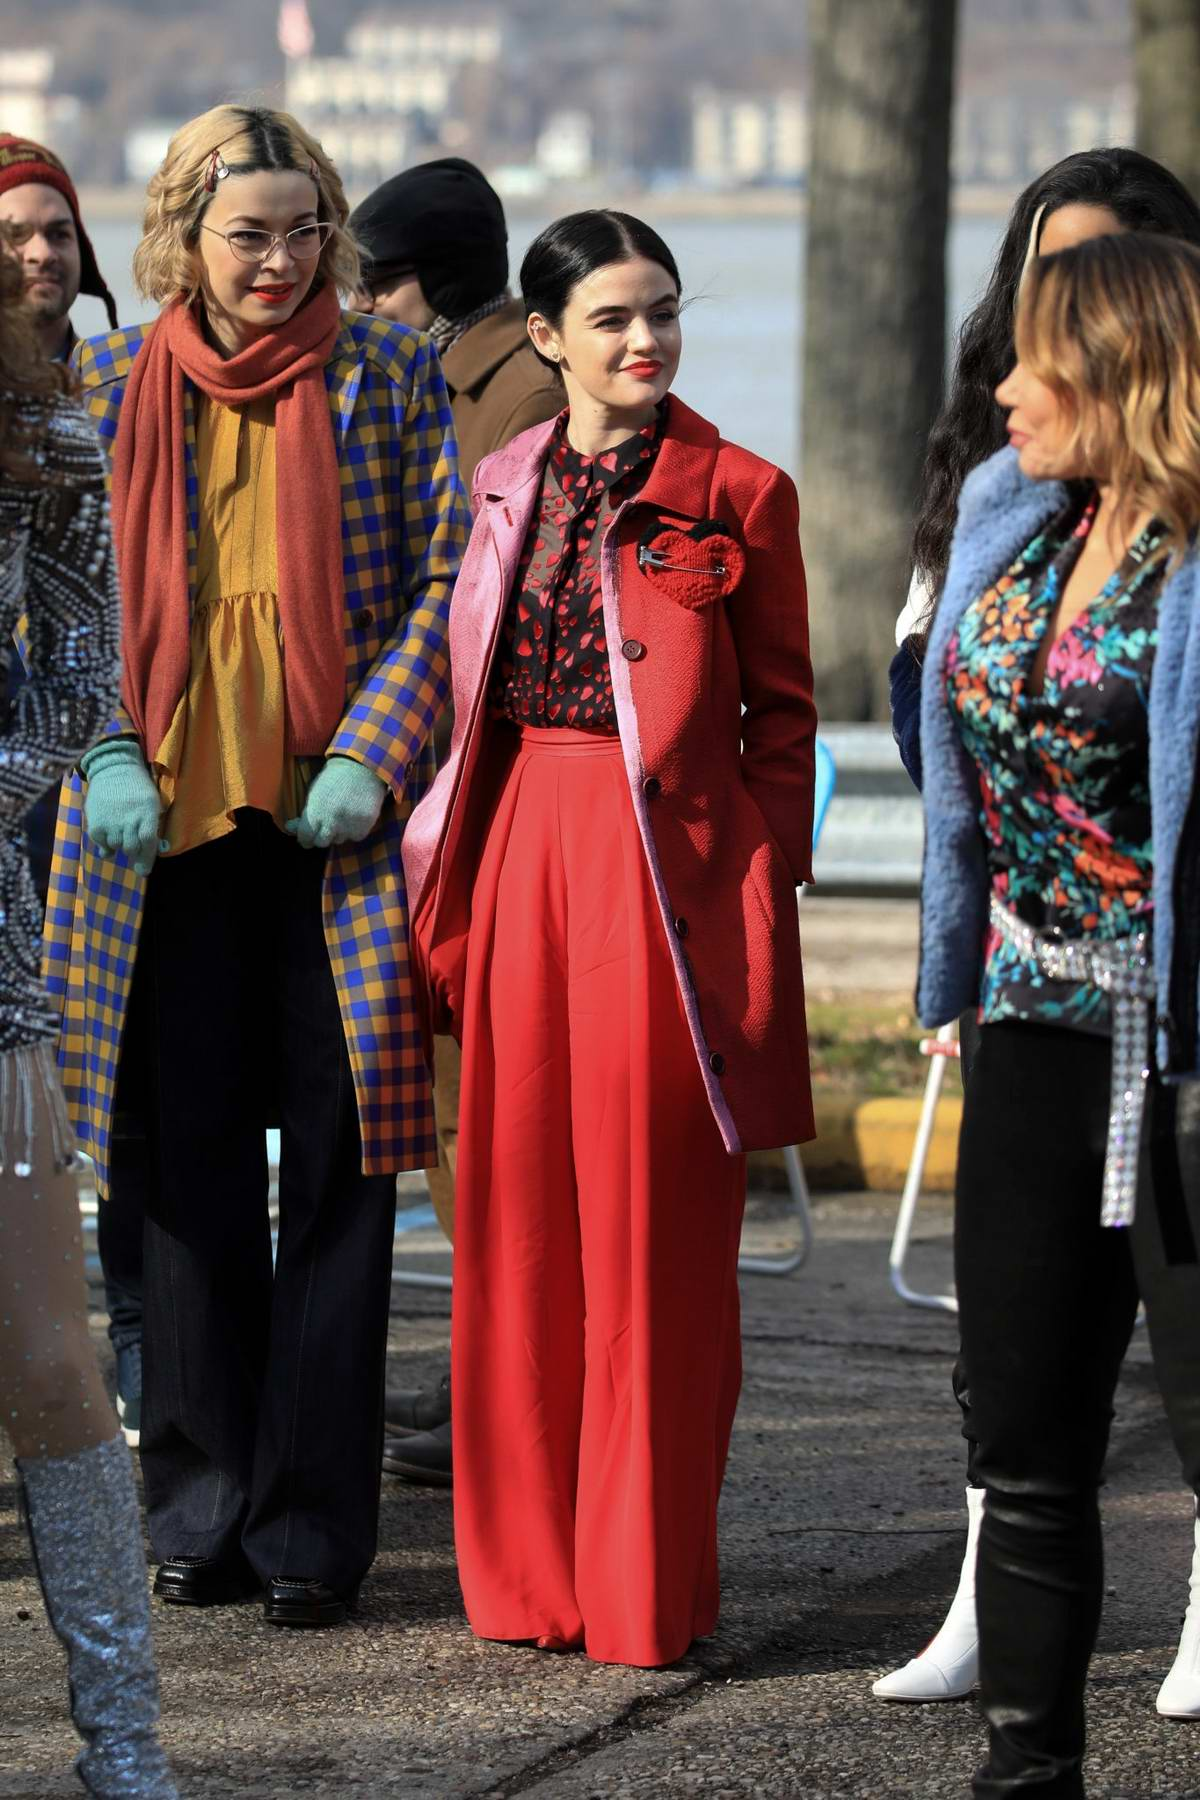 Lucy Hale dons a bright red outfit while on the set of 'Katy Keene' in New York City